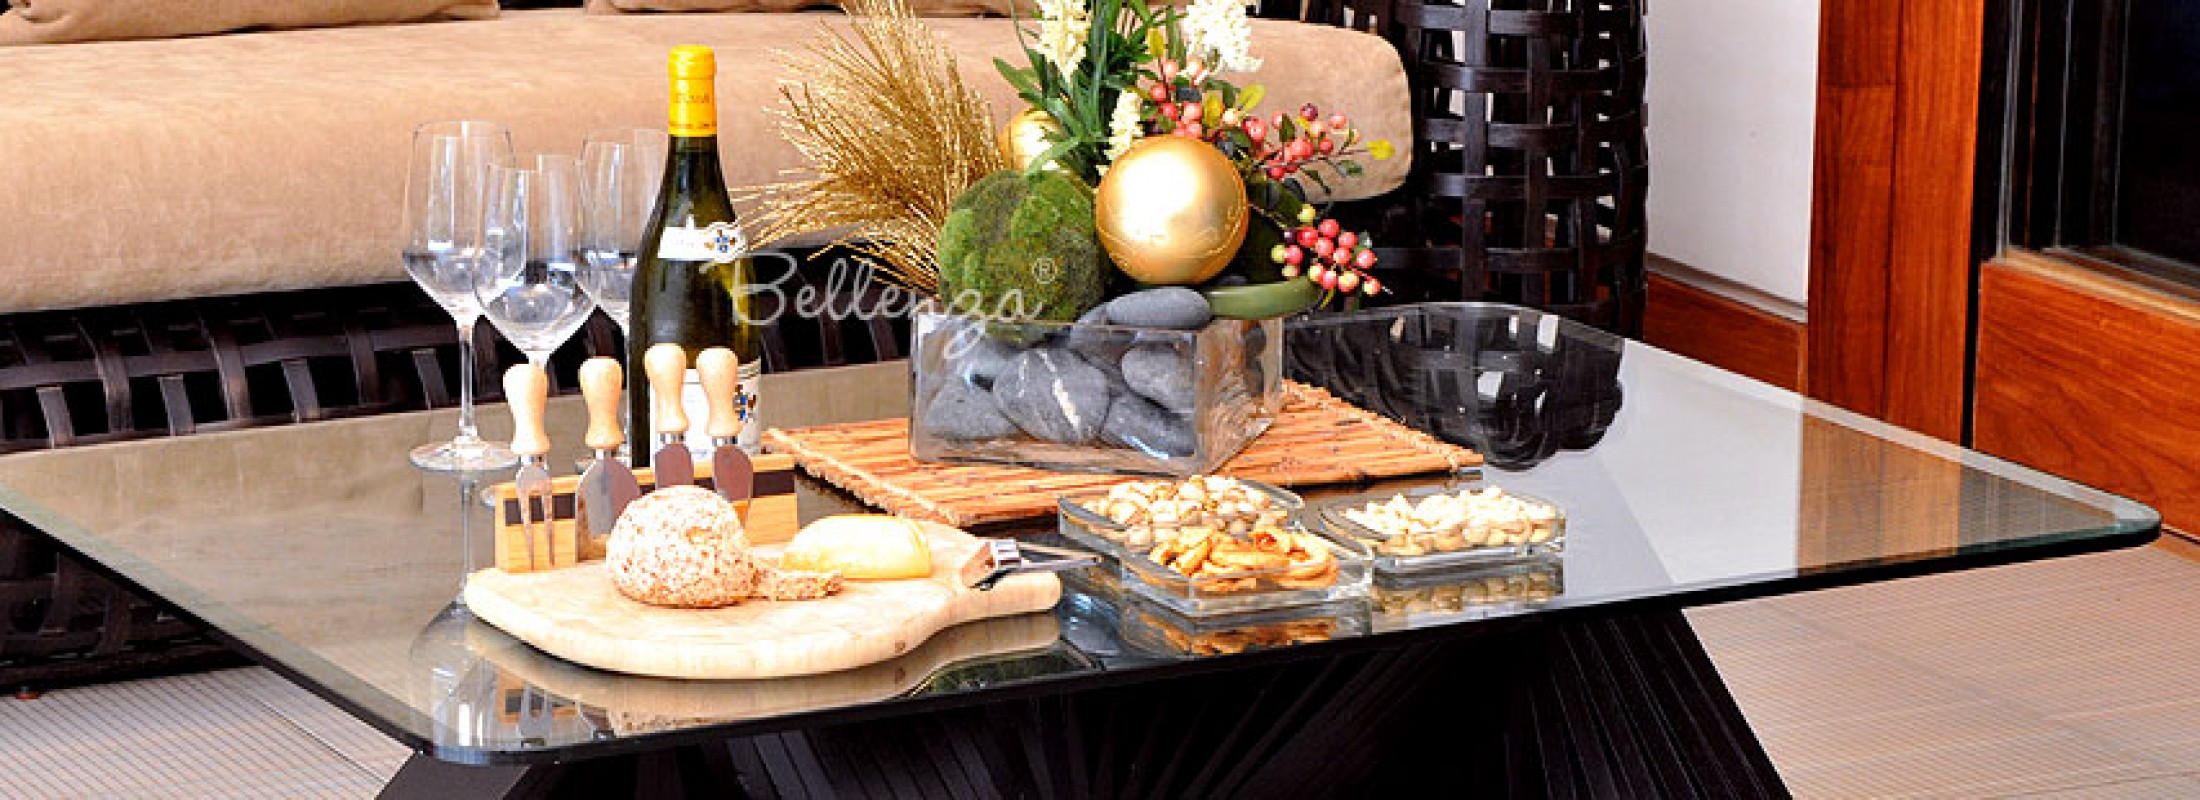 Wine and Cheese Holiday Party Ideas that are Easy